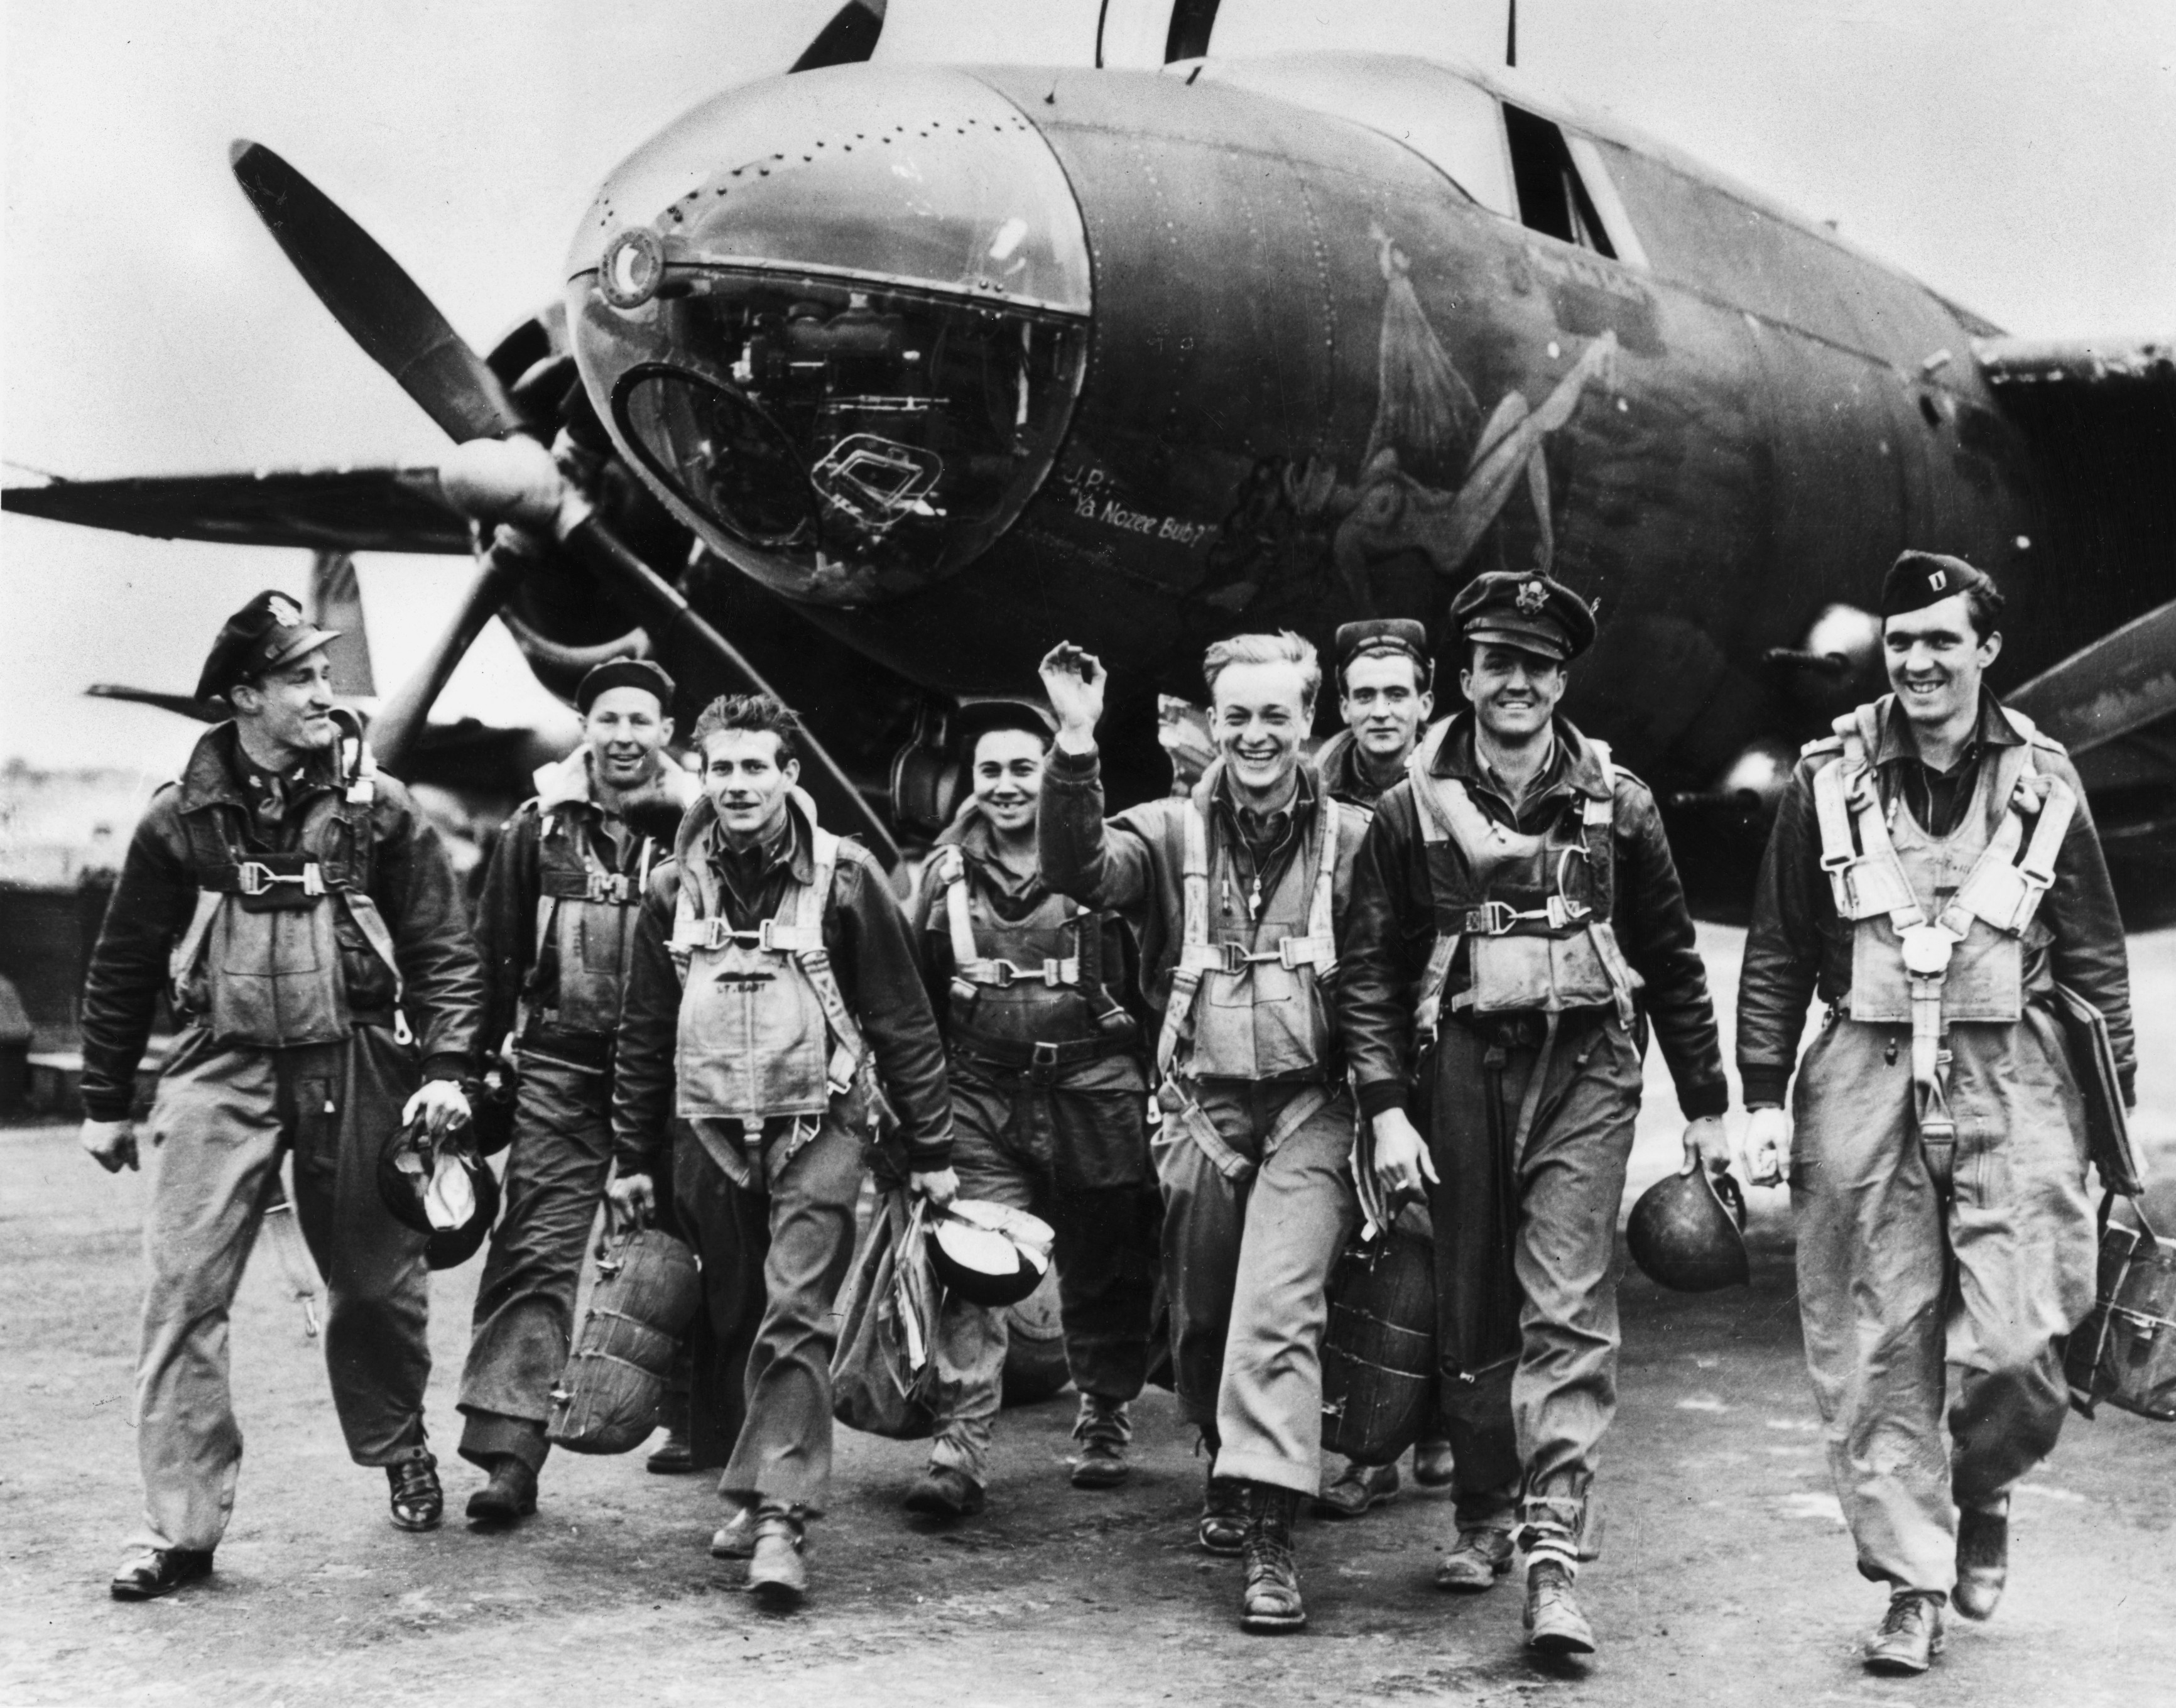 It's amazing just how many Americans served in World War II